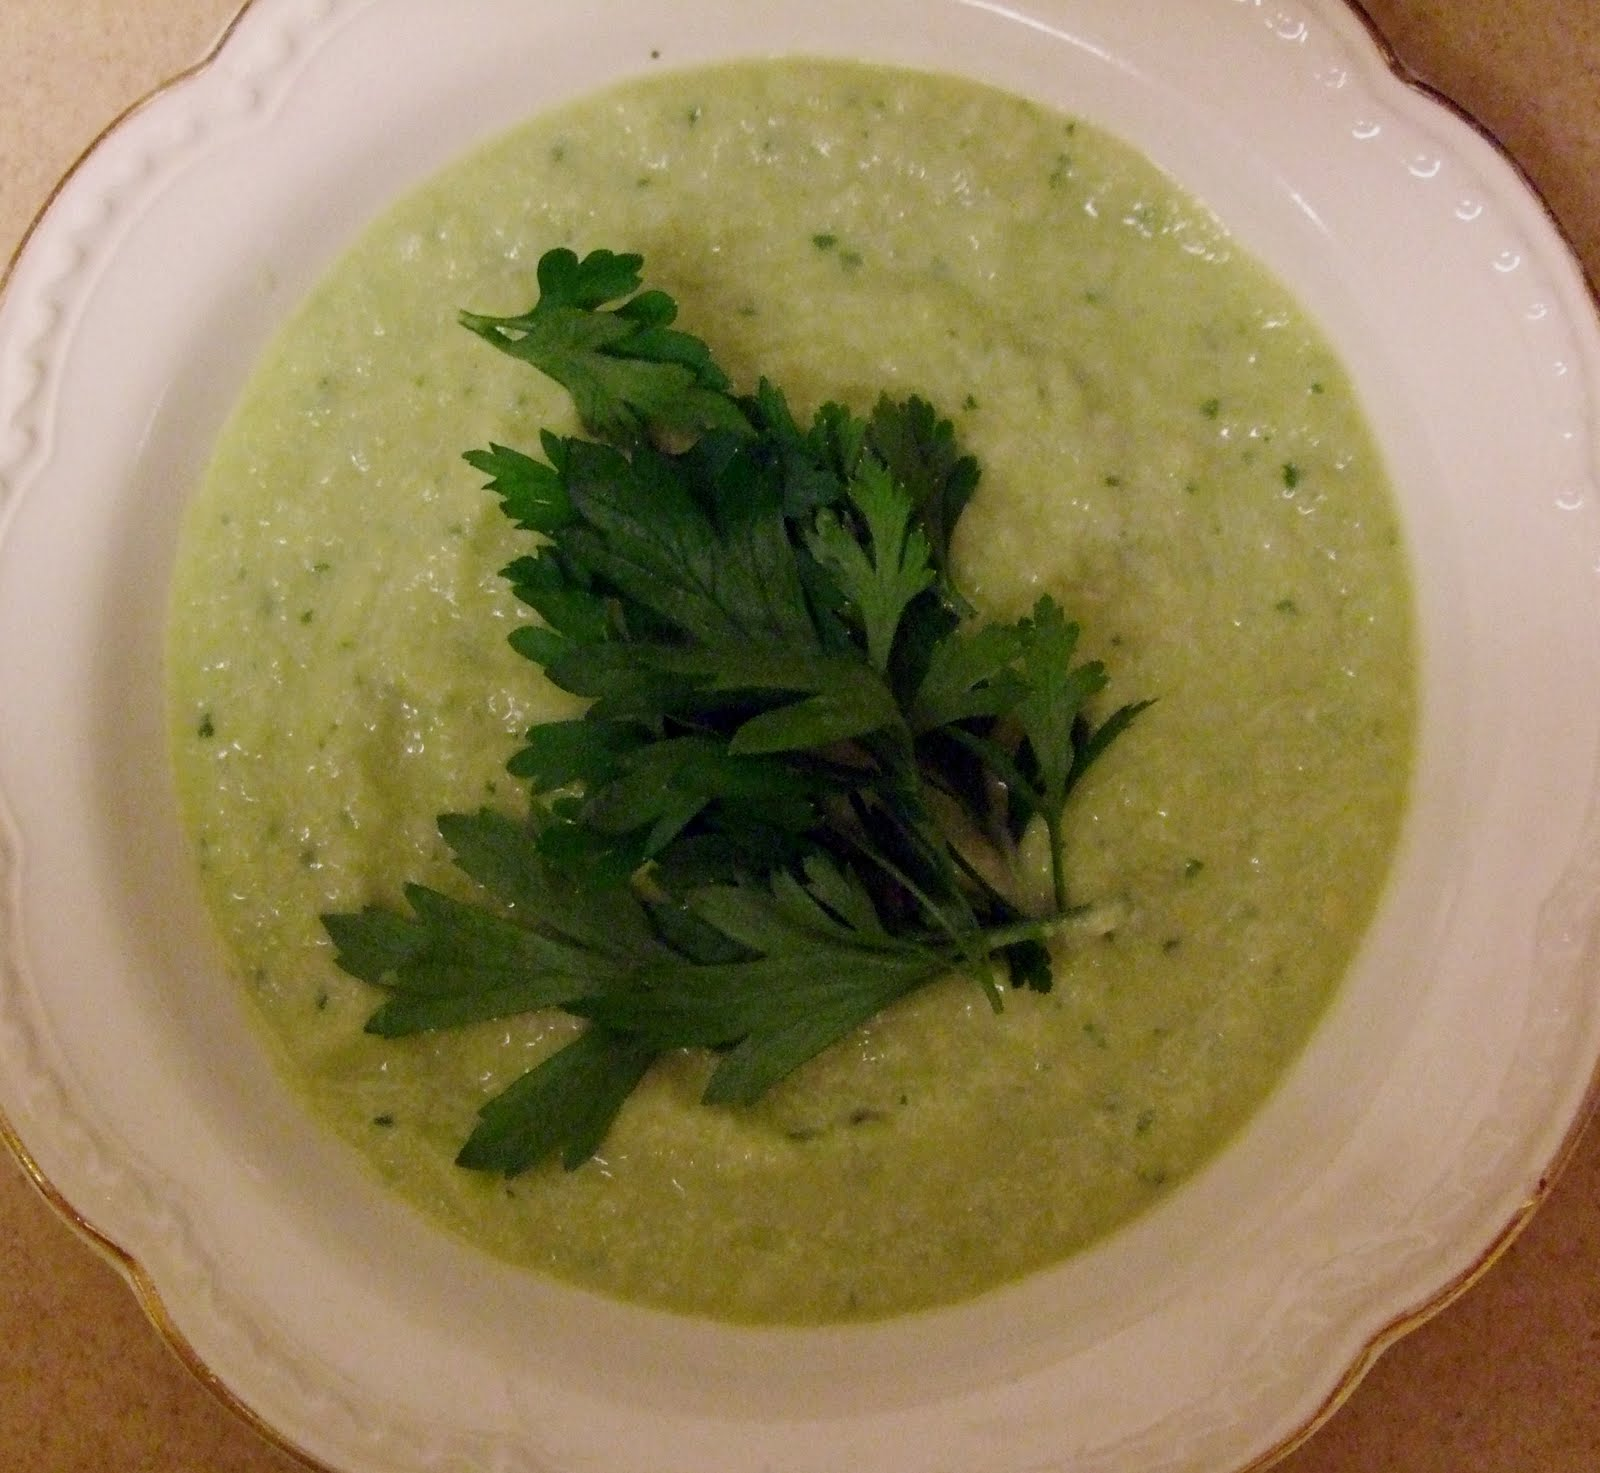 Cucumber-Avocado Soup | The Newlyfeds